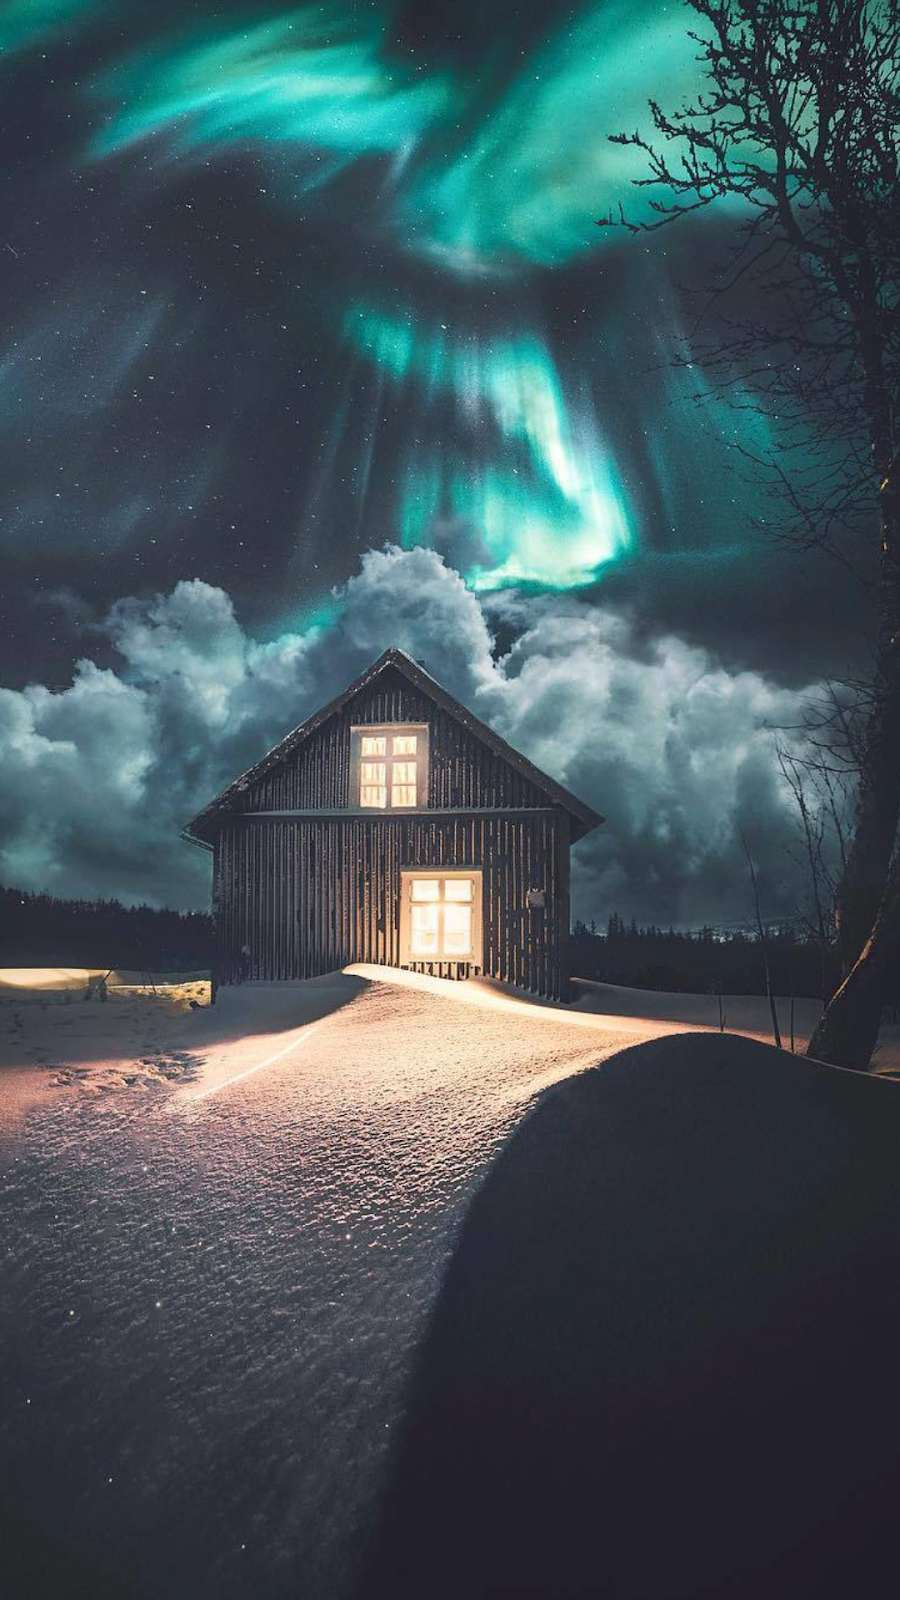 Artistic Quotes Wallpaper Beautiful Dreamy Night Winter Cabin Iphone Wallpaper